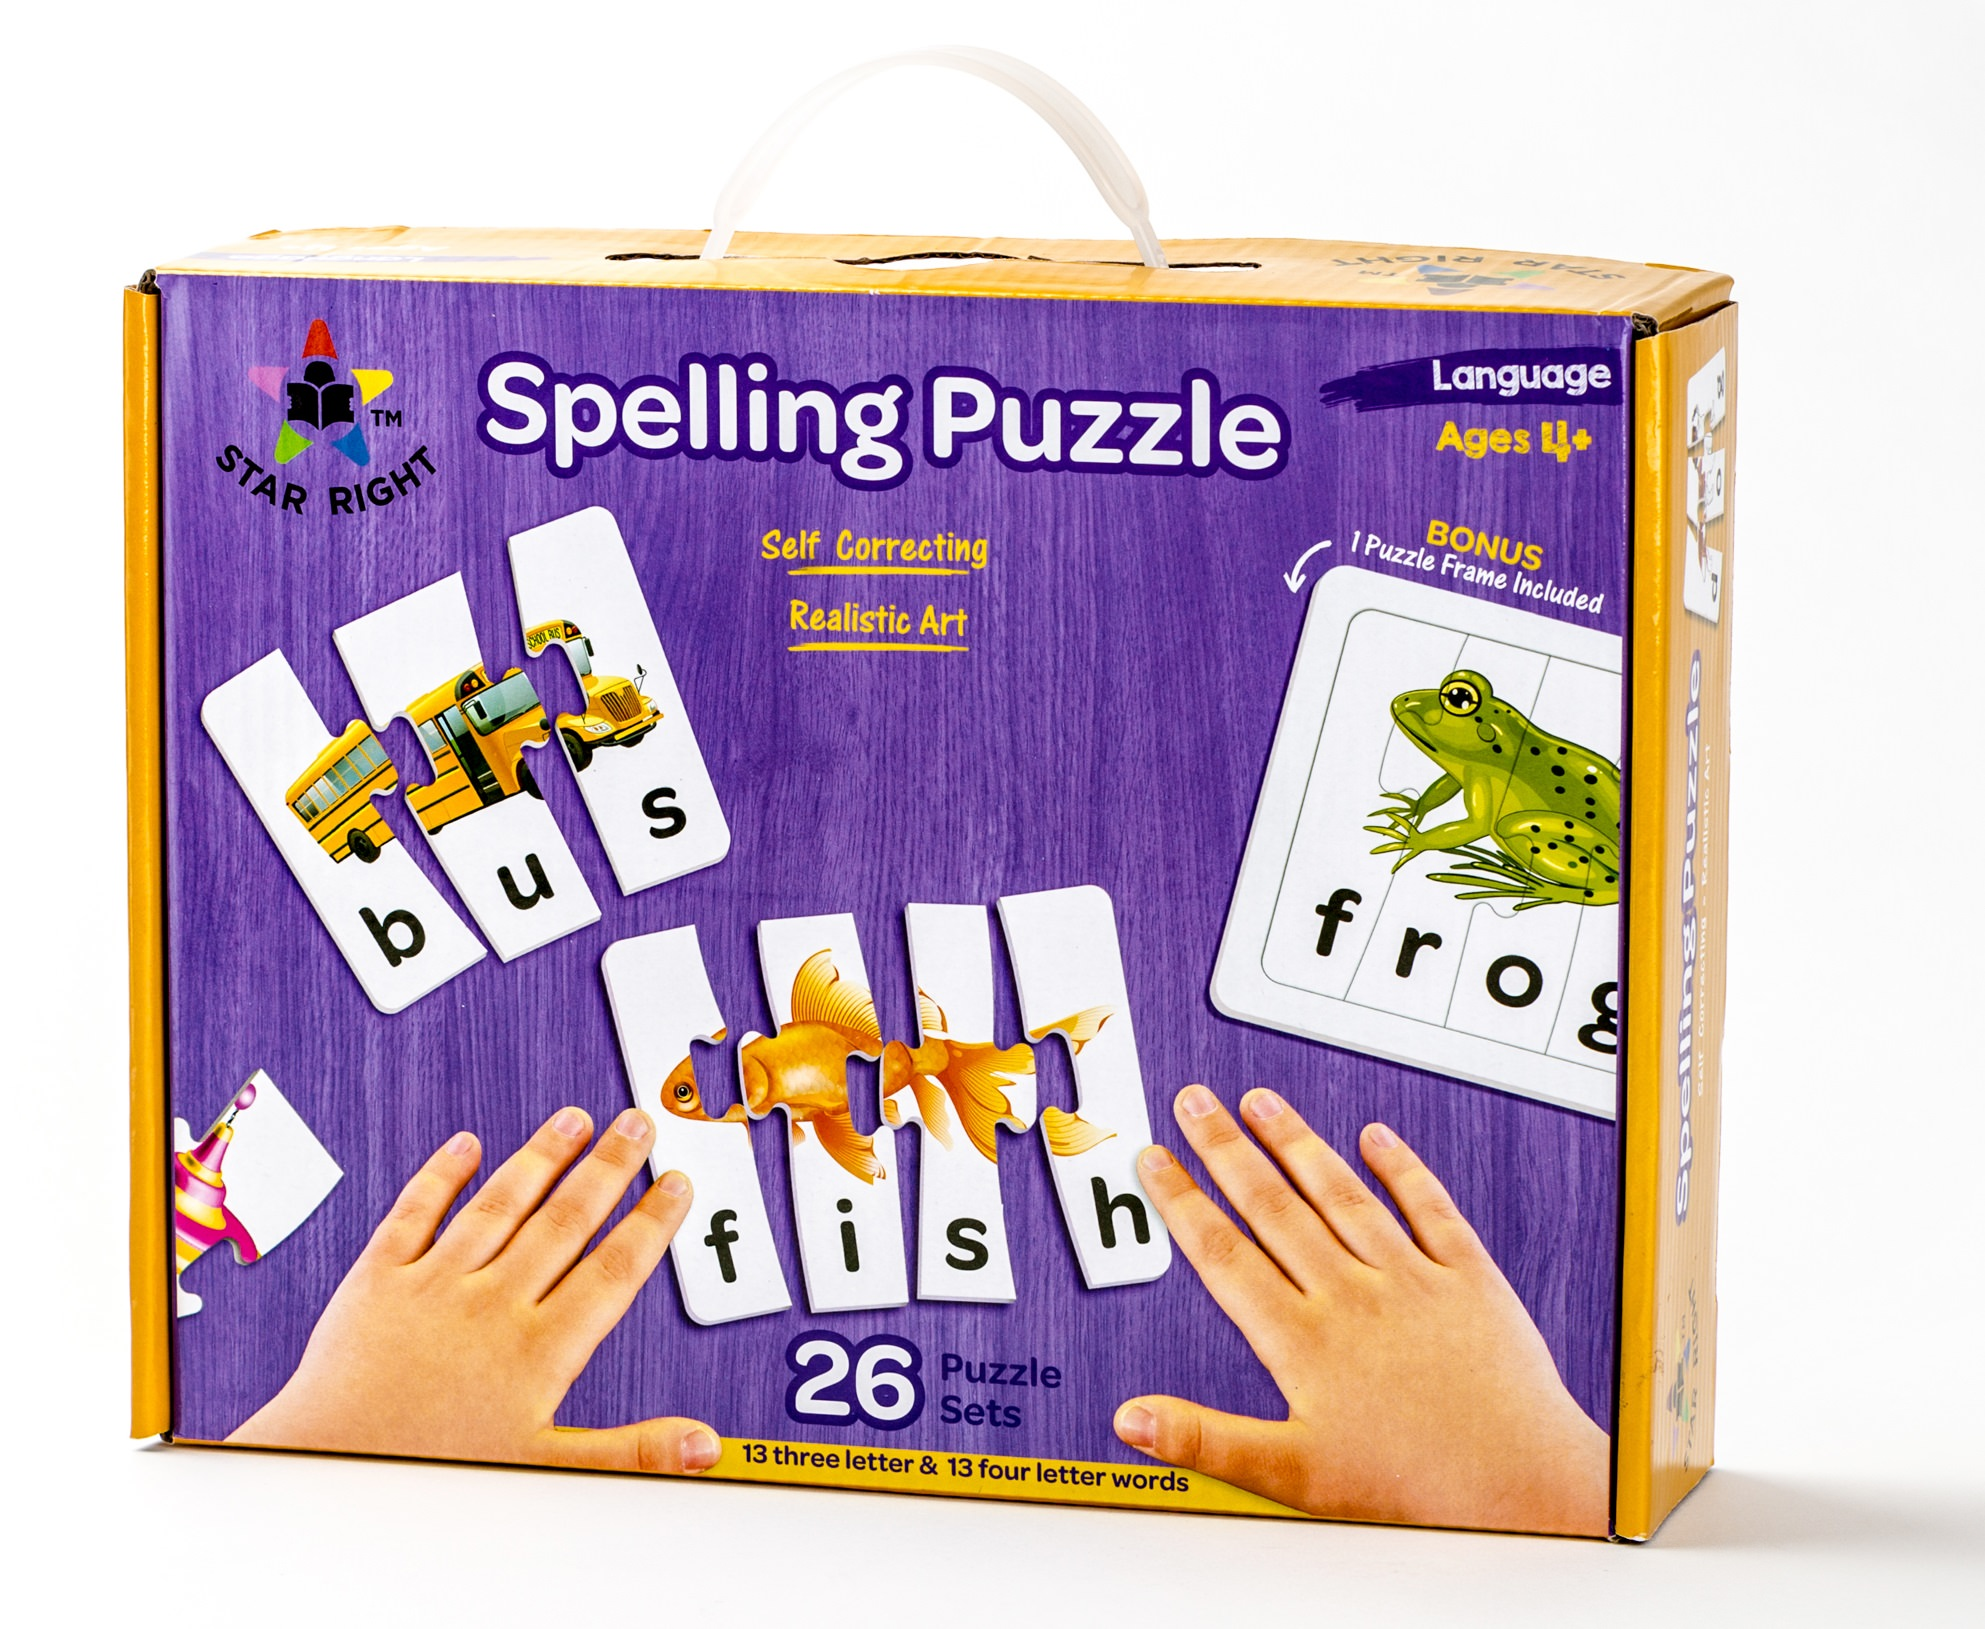 Star Right Self-Correcting Spelling Puzzle with Realistic Art to Set of 26  (52 pieces) with 1 Puzzle Frame Included